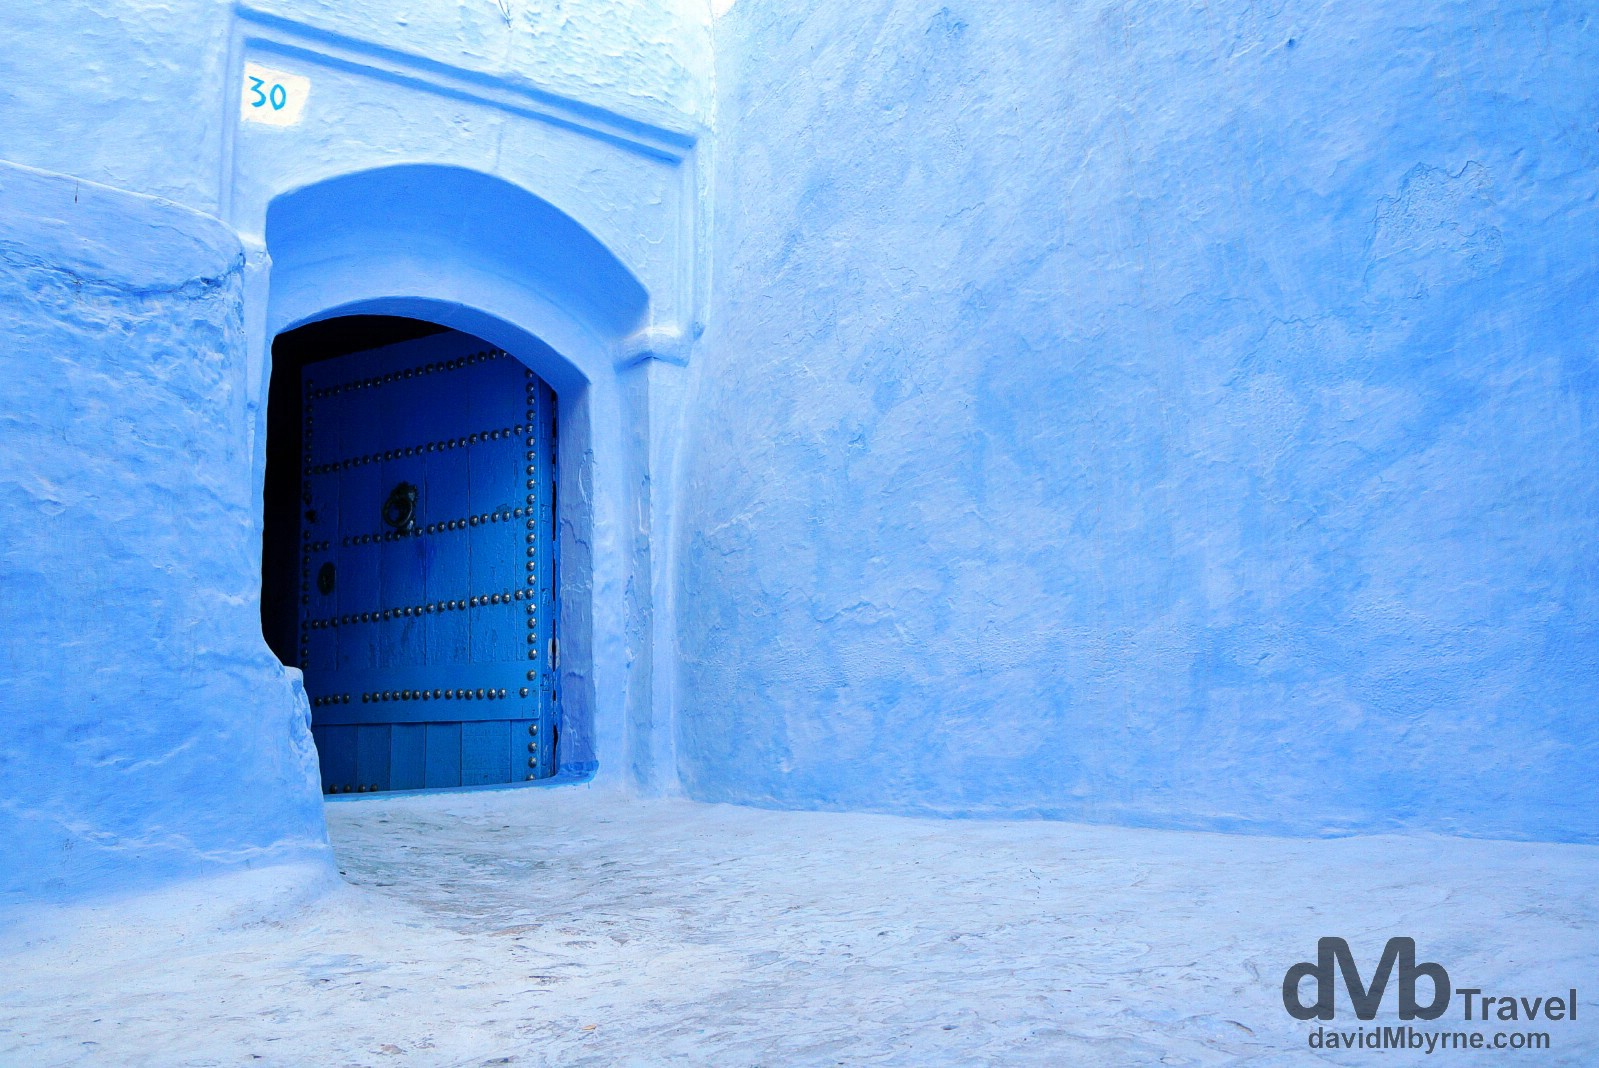 Feeling blue in the lanes of the medina in Chefchaouen, Morocco. May 31st, 2014.